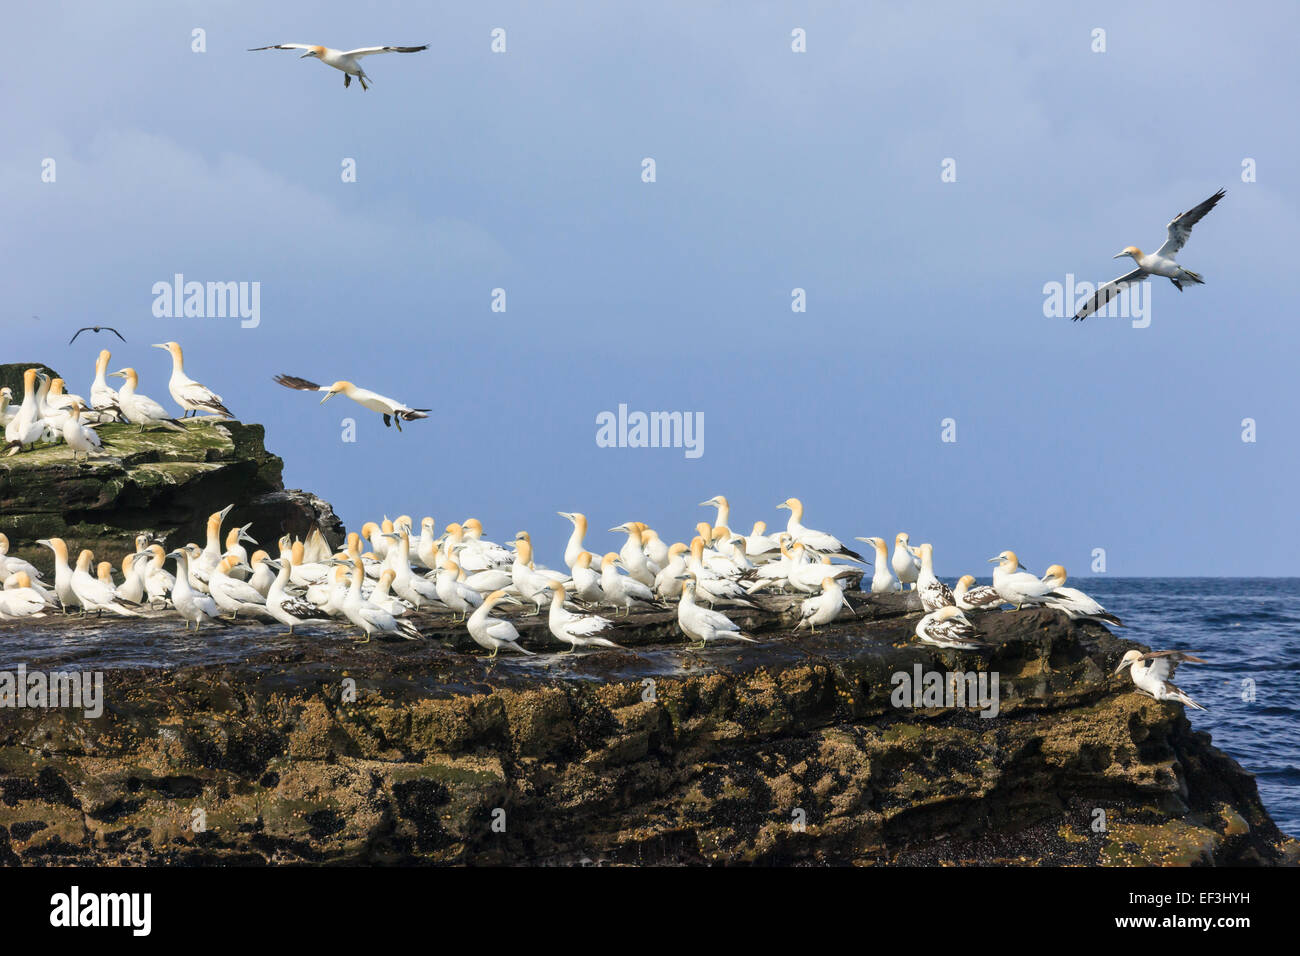 Adult and juvenile Northern Gannets (Morus bassanus) on seacliffs on Scottish Isle of Noss National Nature Reserve. - Stock Image